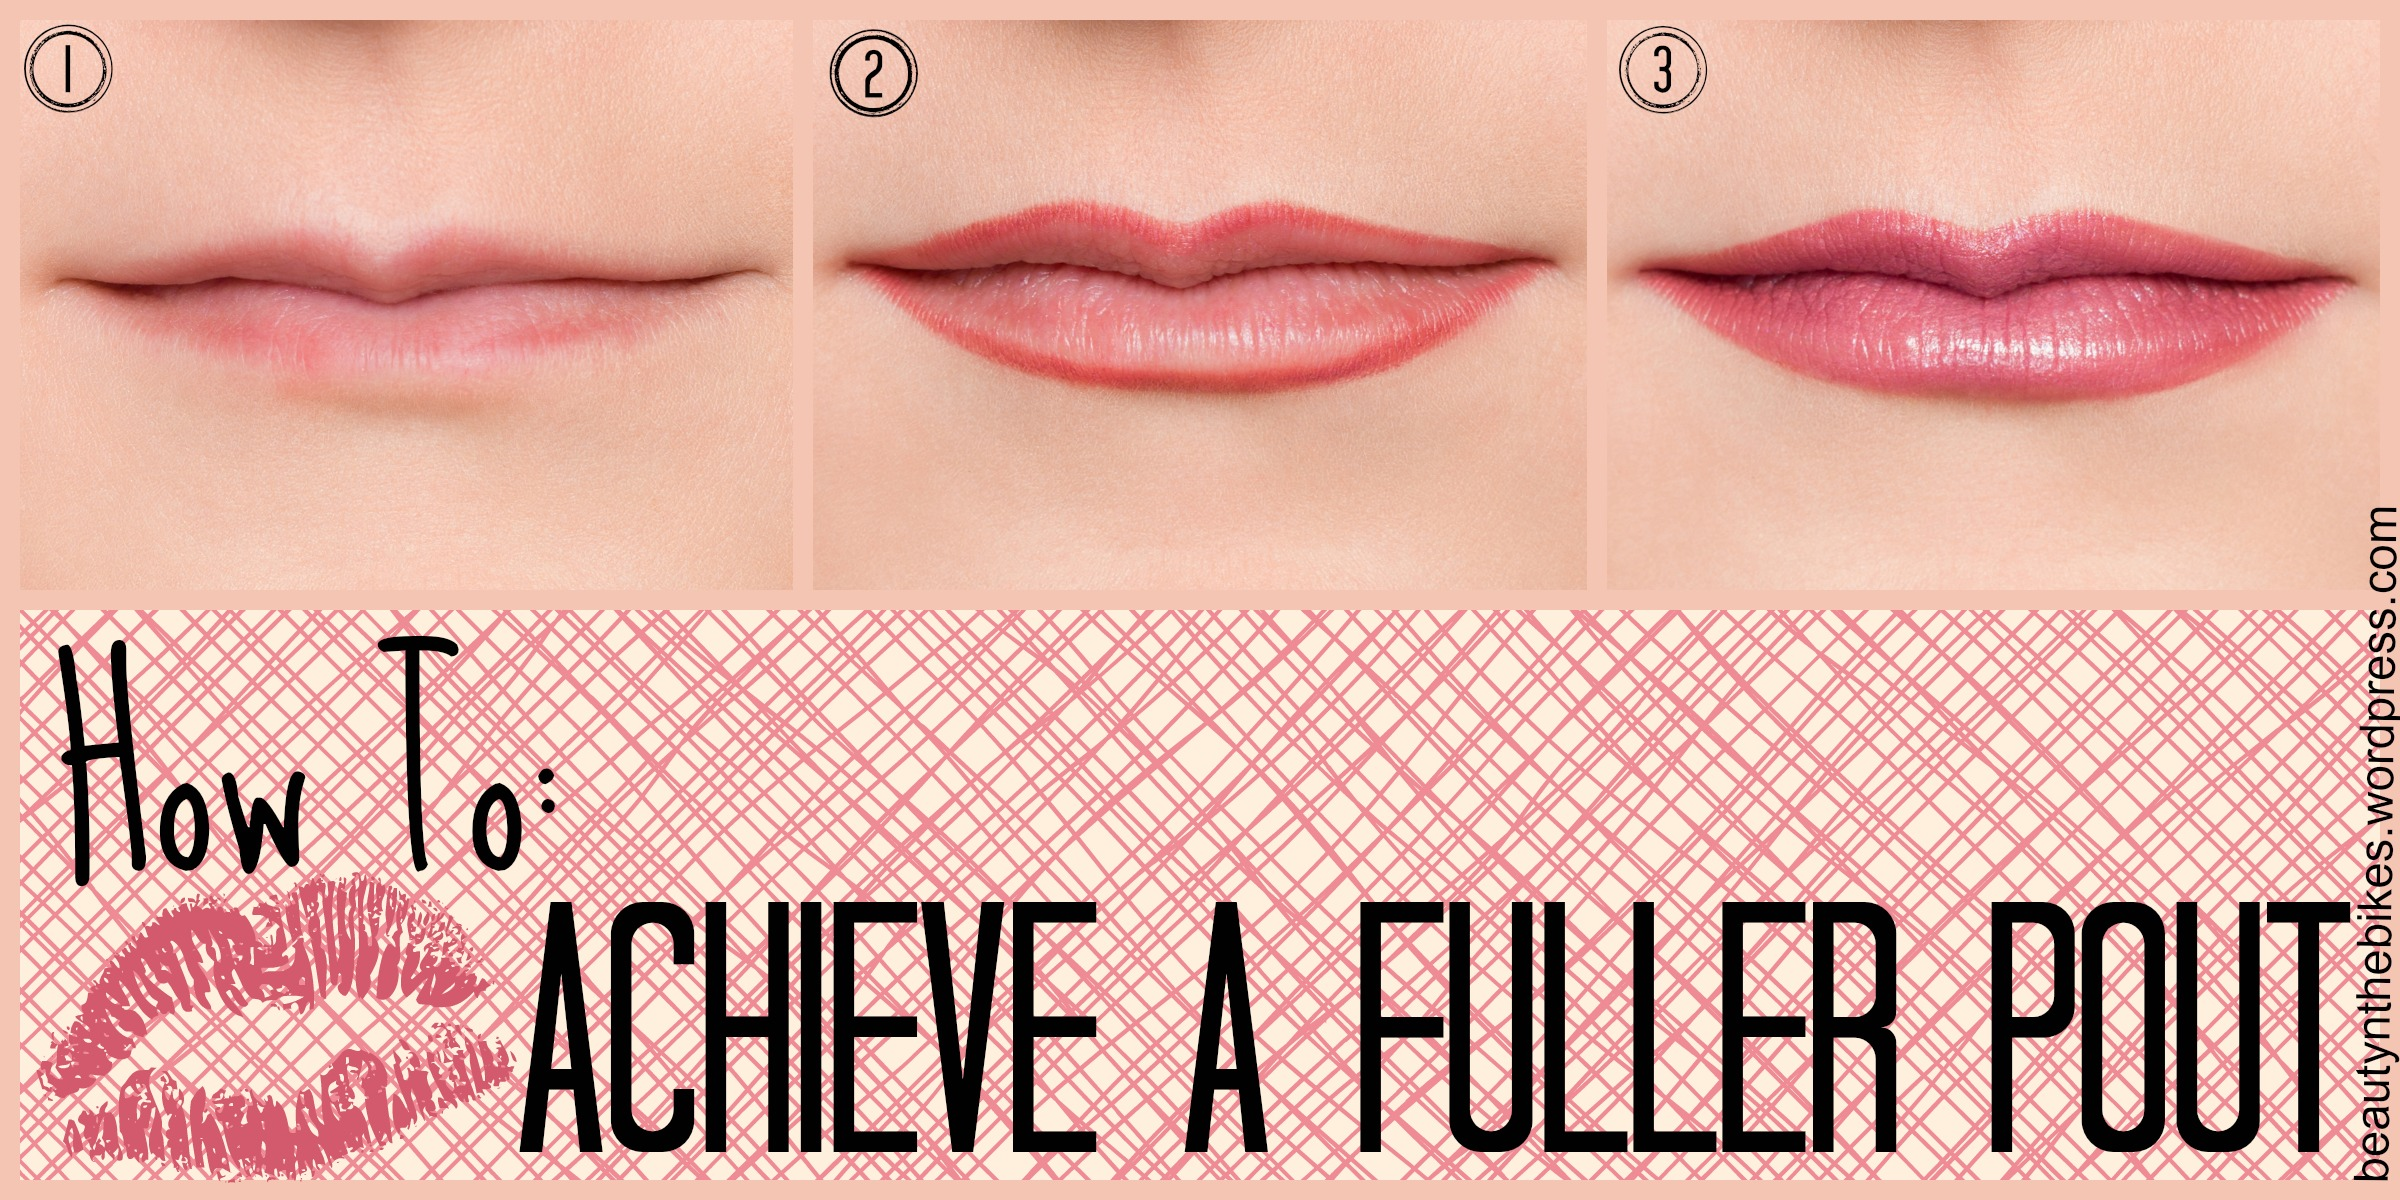 Make Up For Ever Rouge Artist Lip Palettes: Swatches and Comparison ...